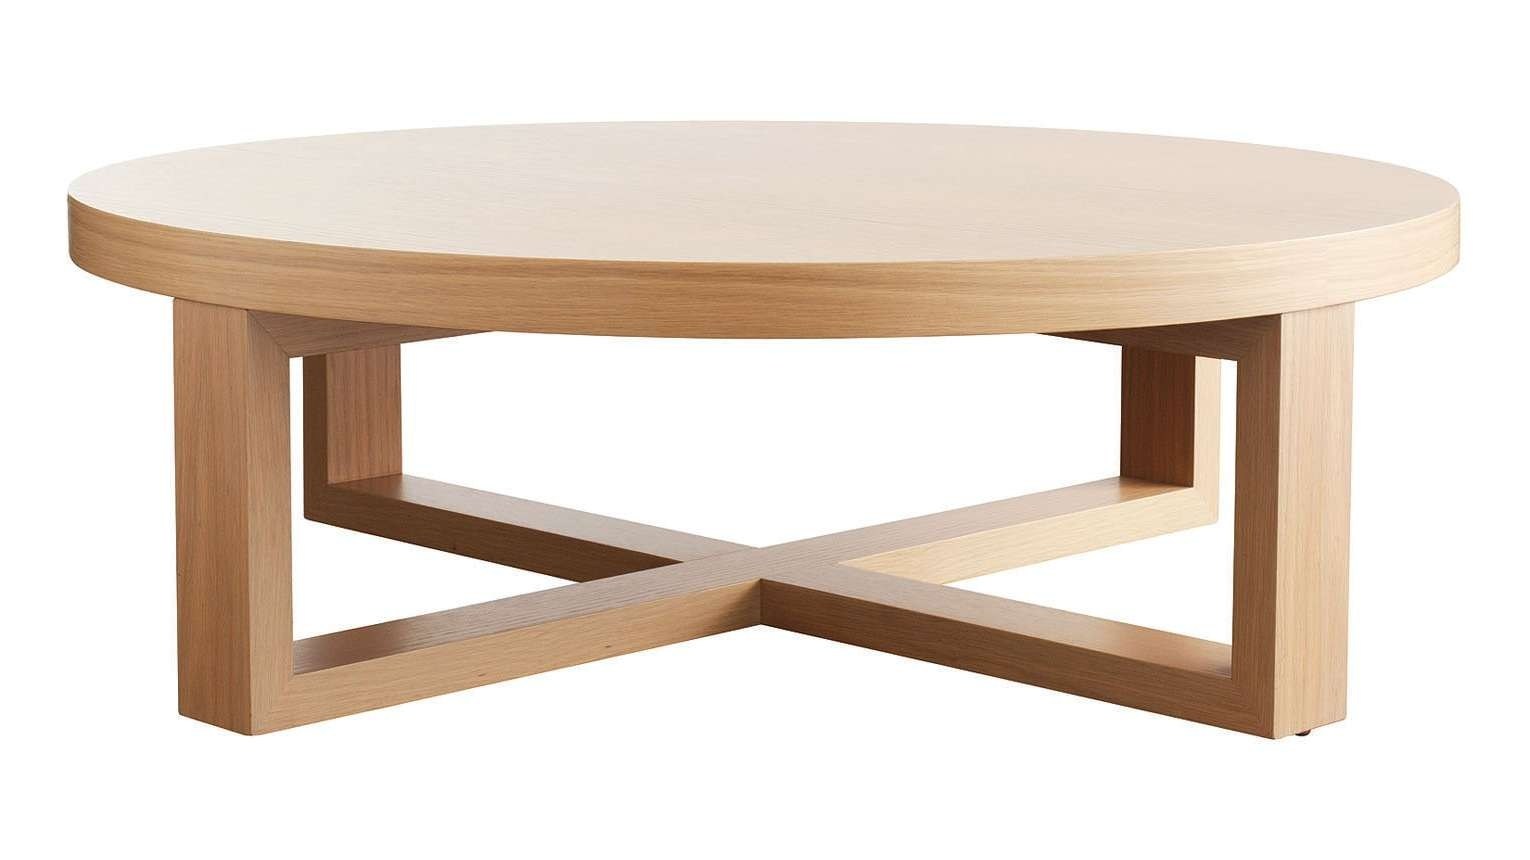 Zuster Furniture April Round Coffee Table Regarding Latest Round Coffee Tables (View 20 of 20)